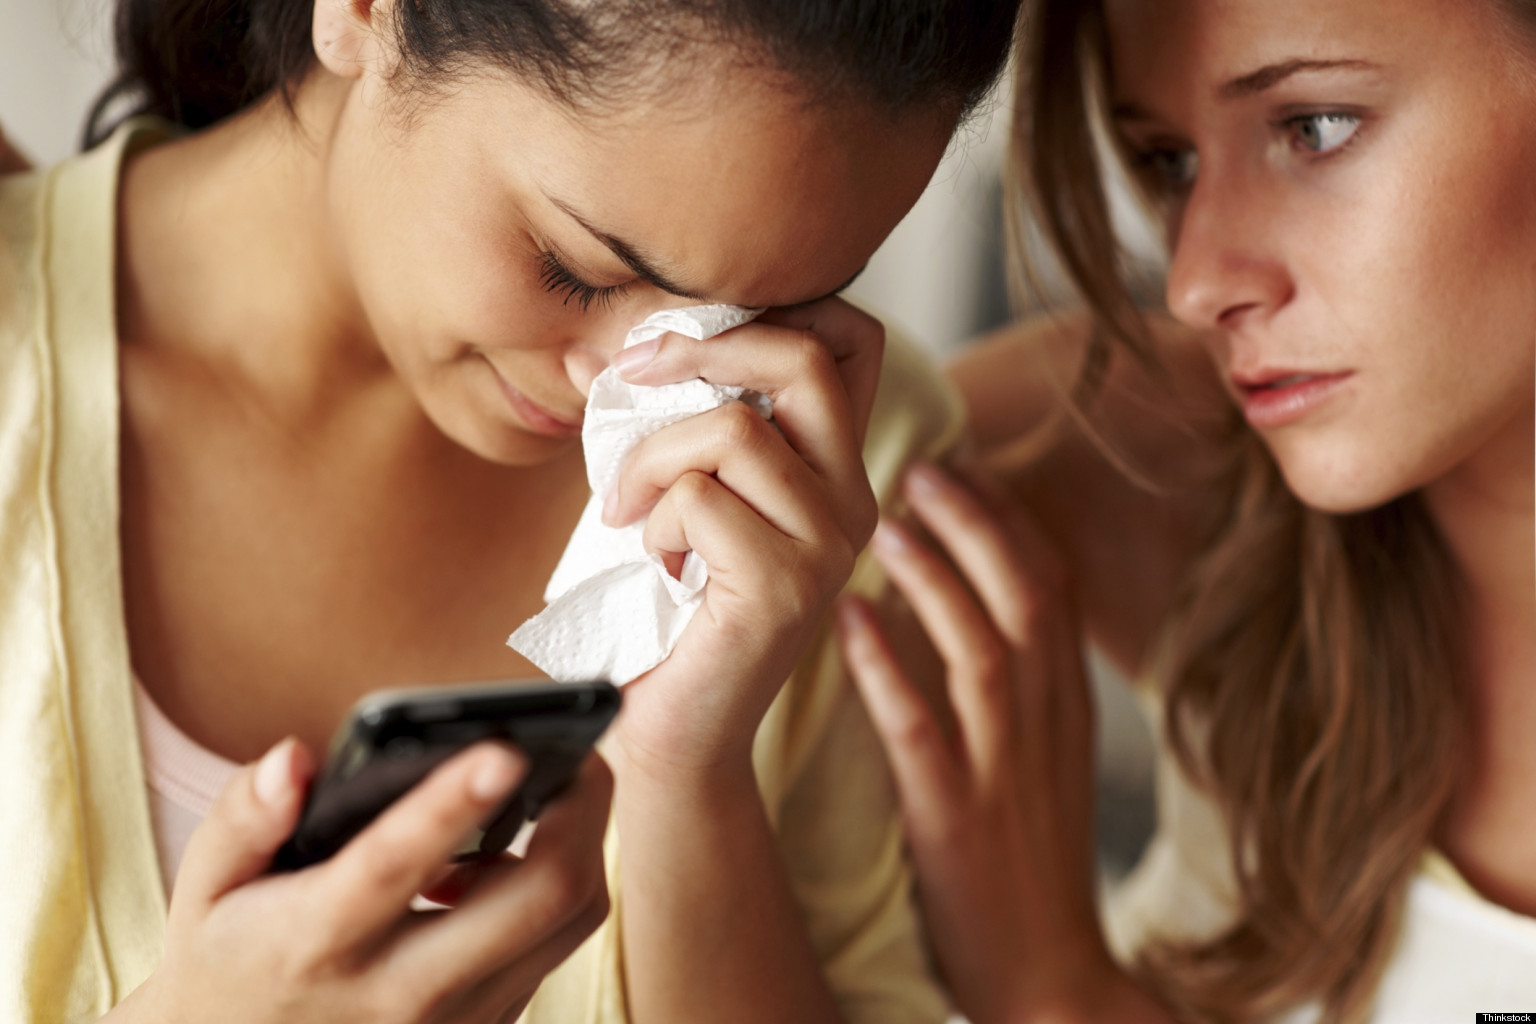 women-crying-together-cell-phone